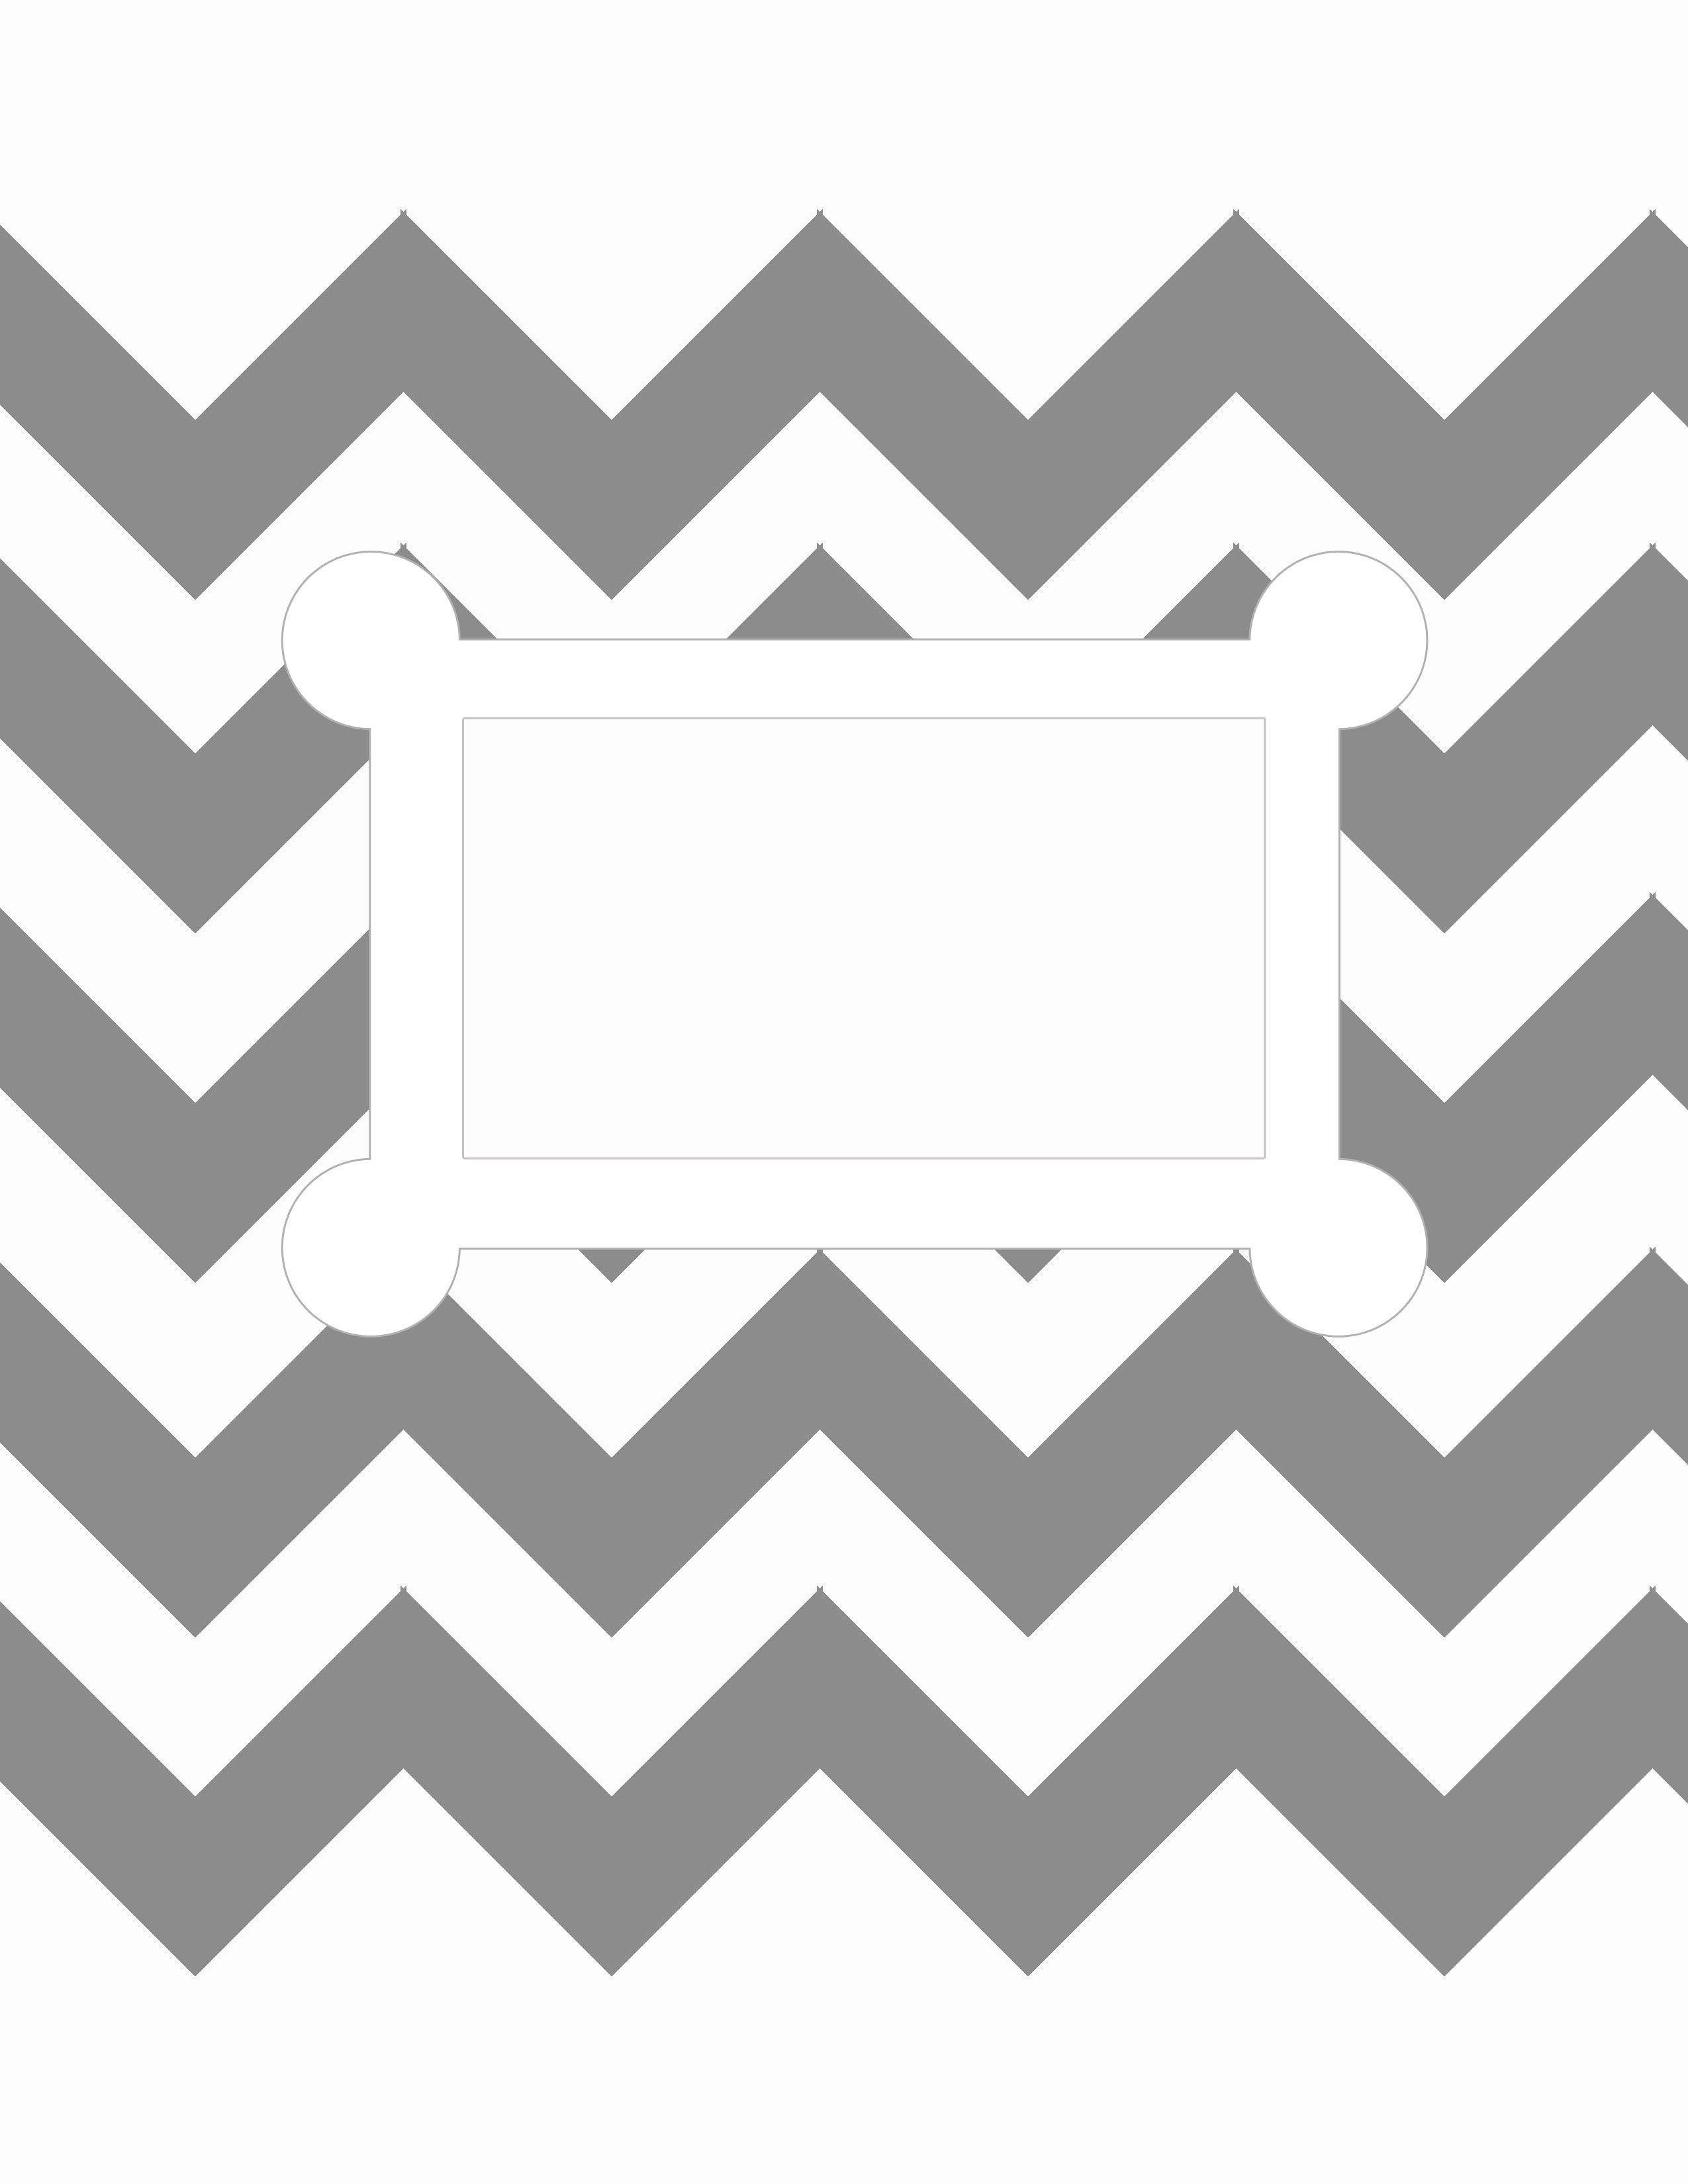 Free Printable. 8.5 X 11, Letter Size, Binder Cover Template. Grey - Free Printable Chevron Templates